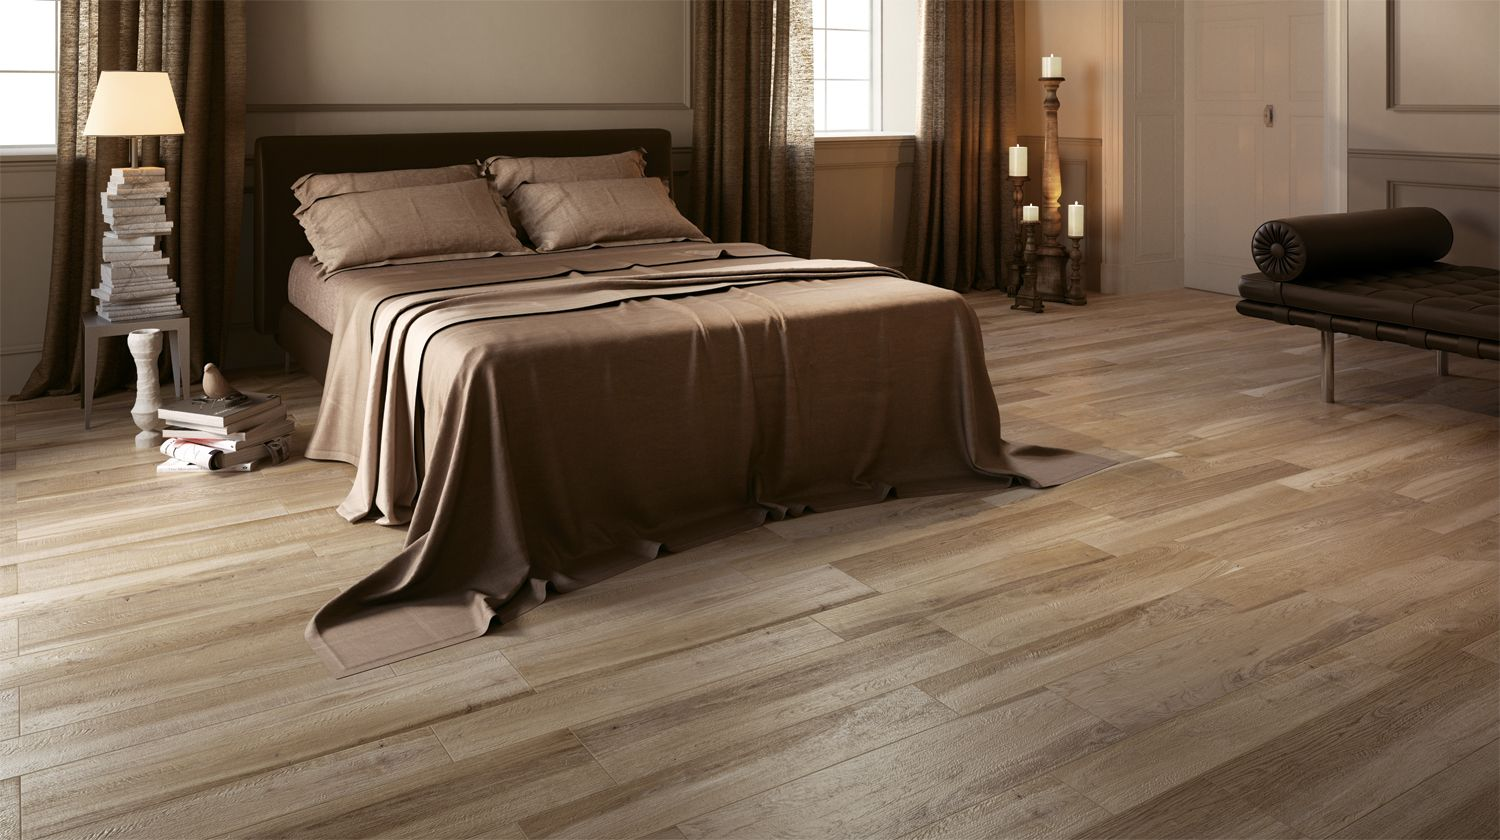 Naturae aequa tur 12 in x 48 in wood look porcelain tile aequa naturae aequa tur 12 in x 48 in wood look porcelain tile dailygadgetfo Gallery